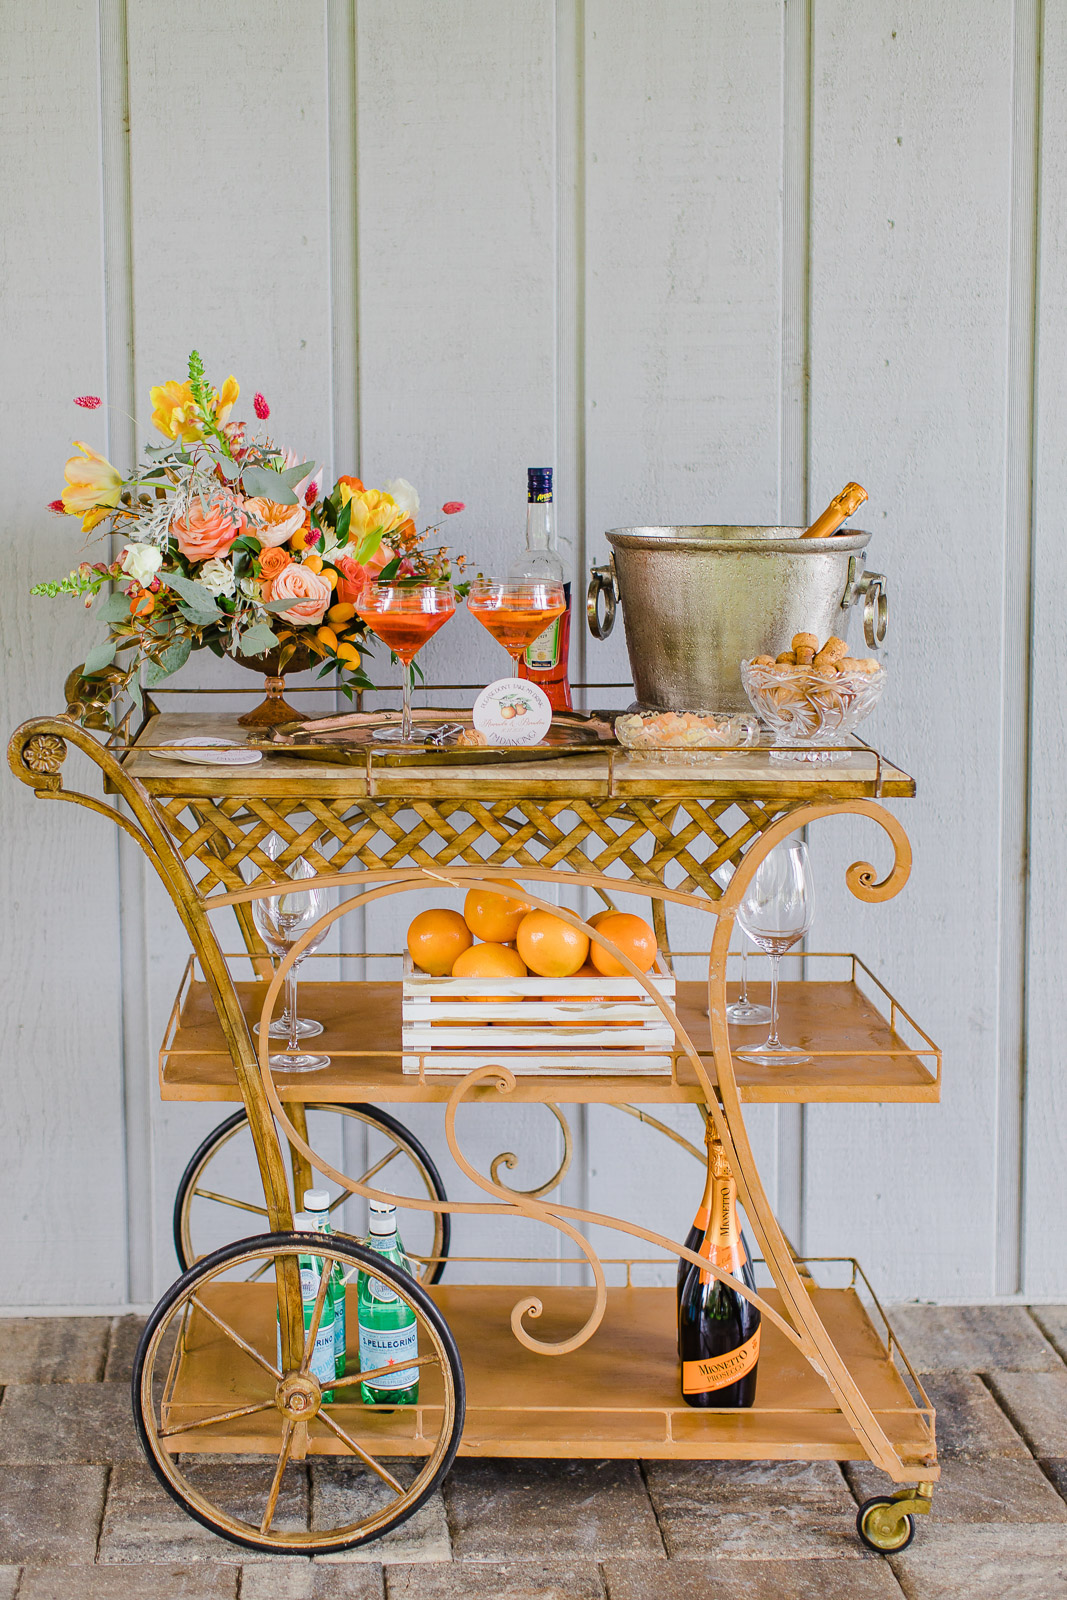 Wedding bar cart with citrus inspired drinks and florals